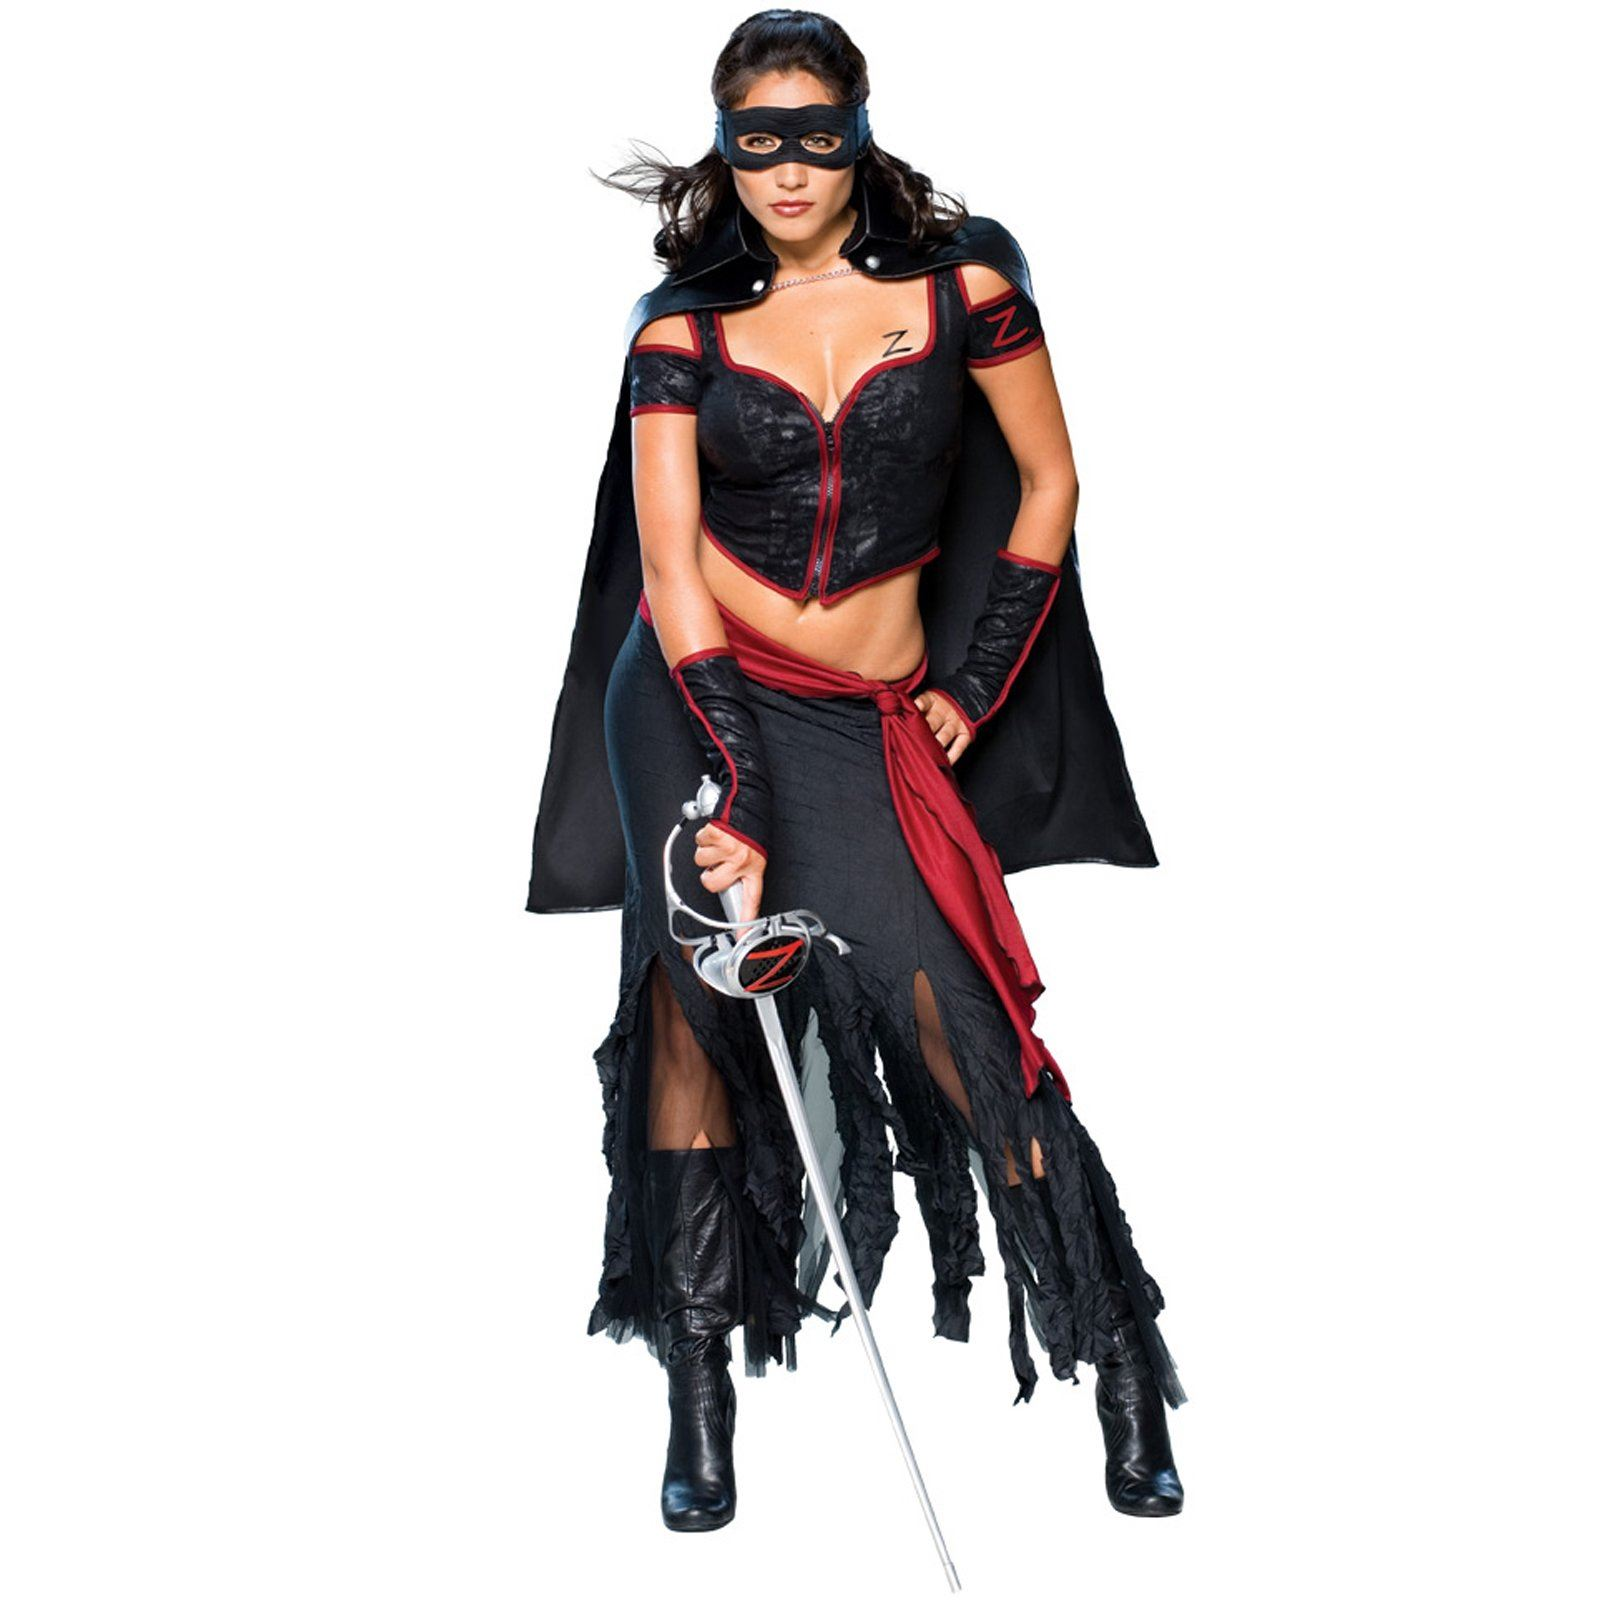 Adult Lady Zorro Deluxe Women Costume  sc 1 st  The Costume Land & Adult Lady Zorro Deluxe Women Costume | $60.99 | The Costume Land